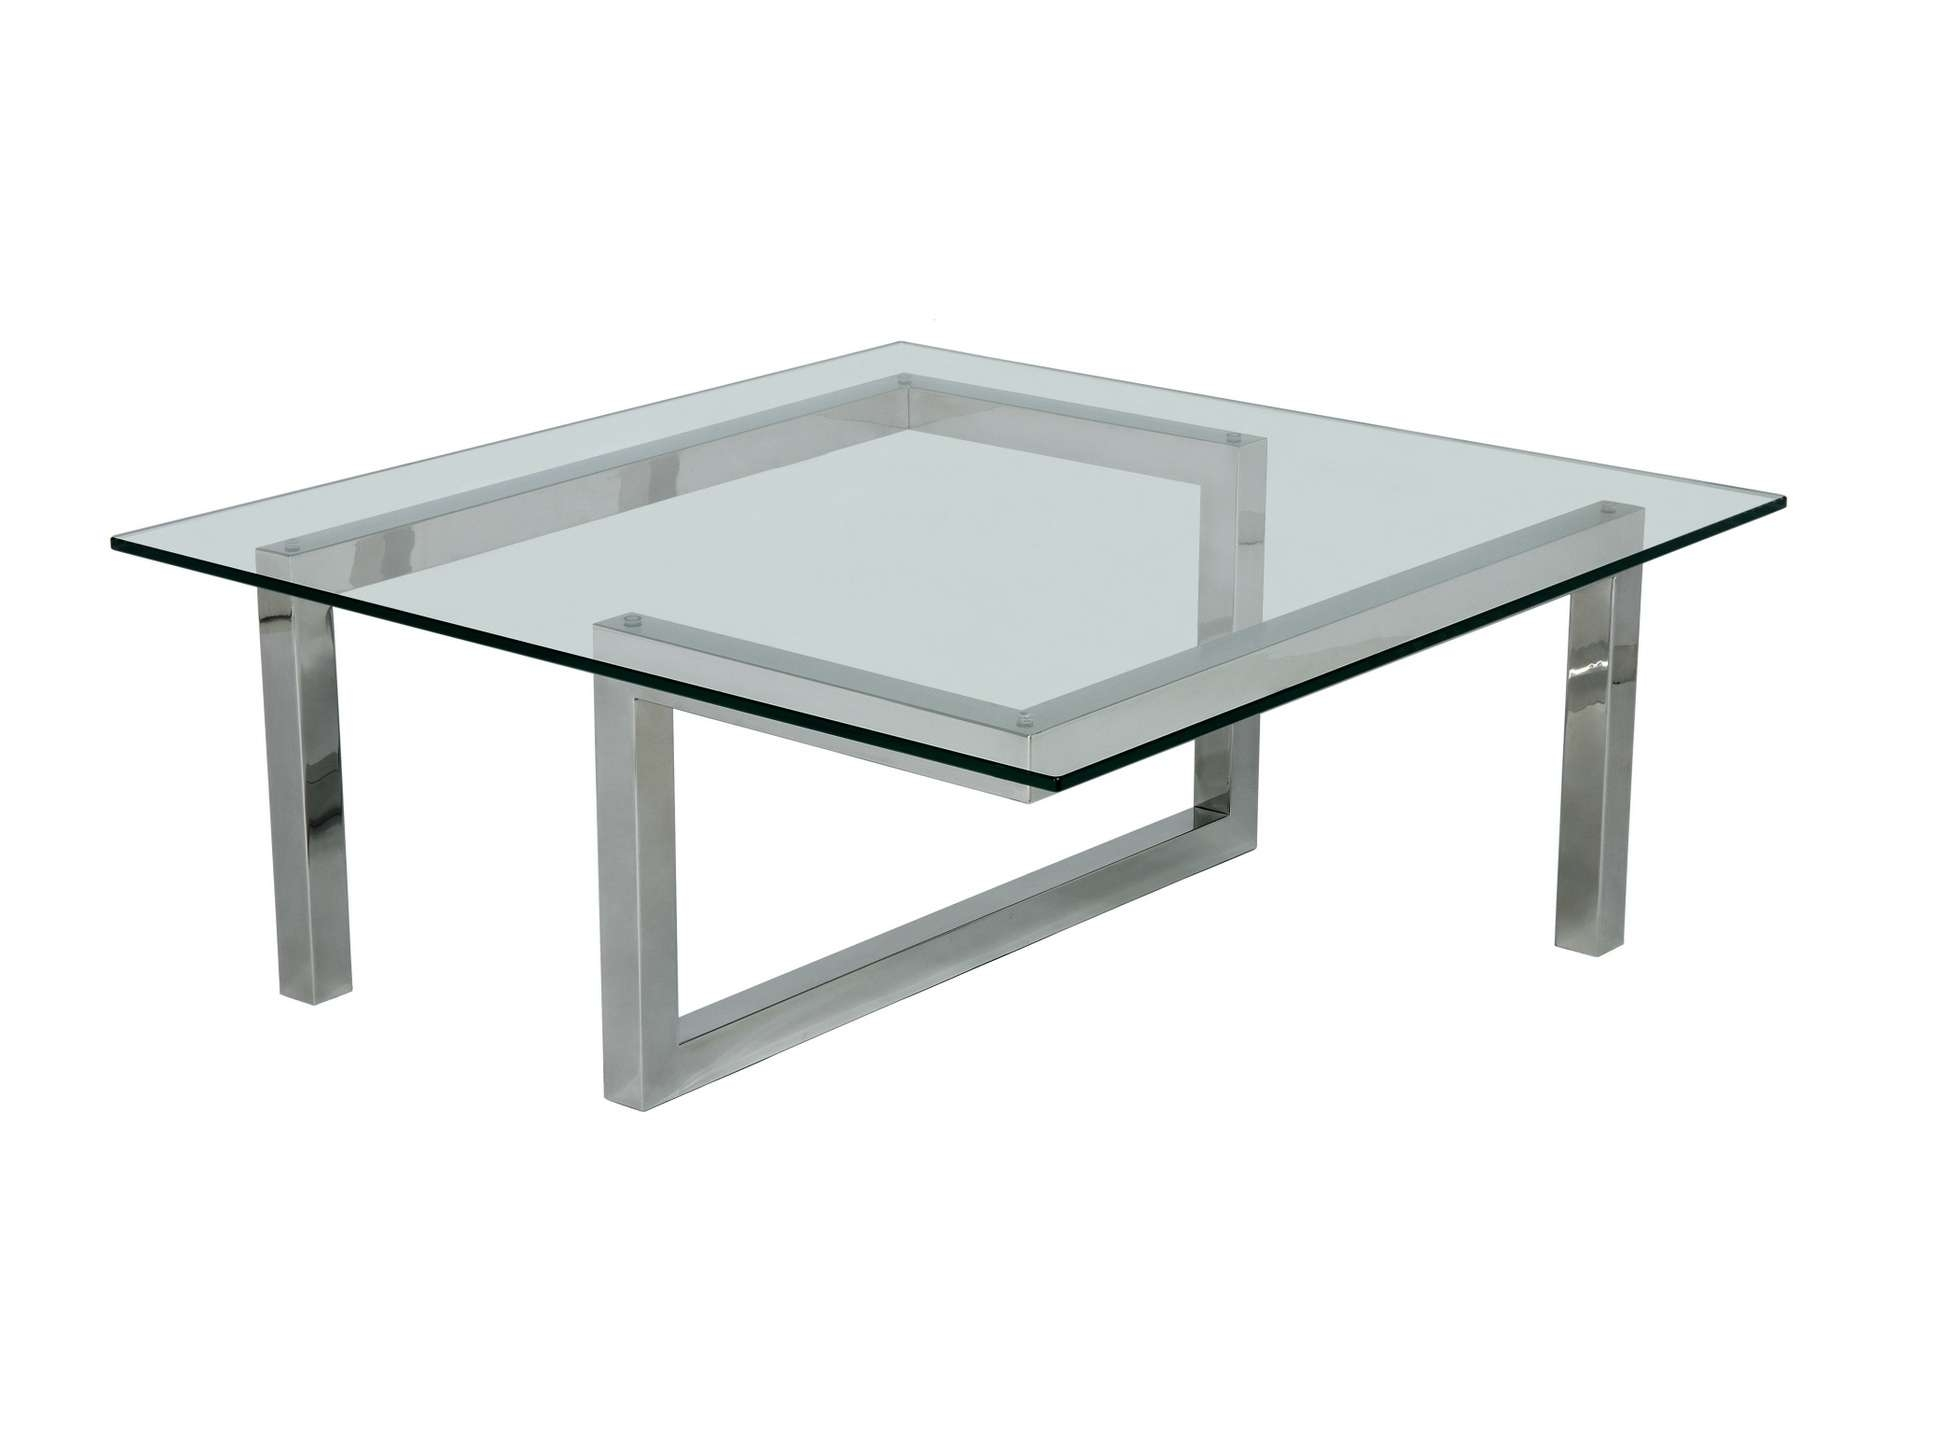 2018 Modern Square Glass Coffee Tables For Square Glass Coffee Table For Living Room Decoration – Ruchi Designs (View 2 of 20)